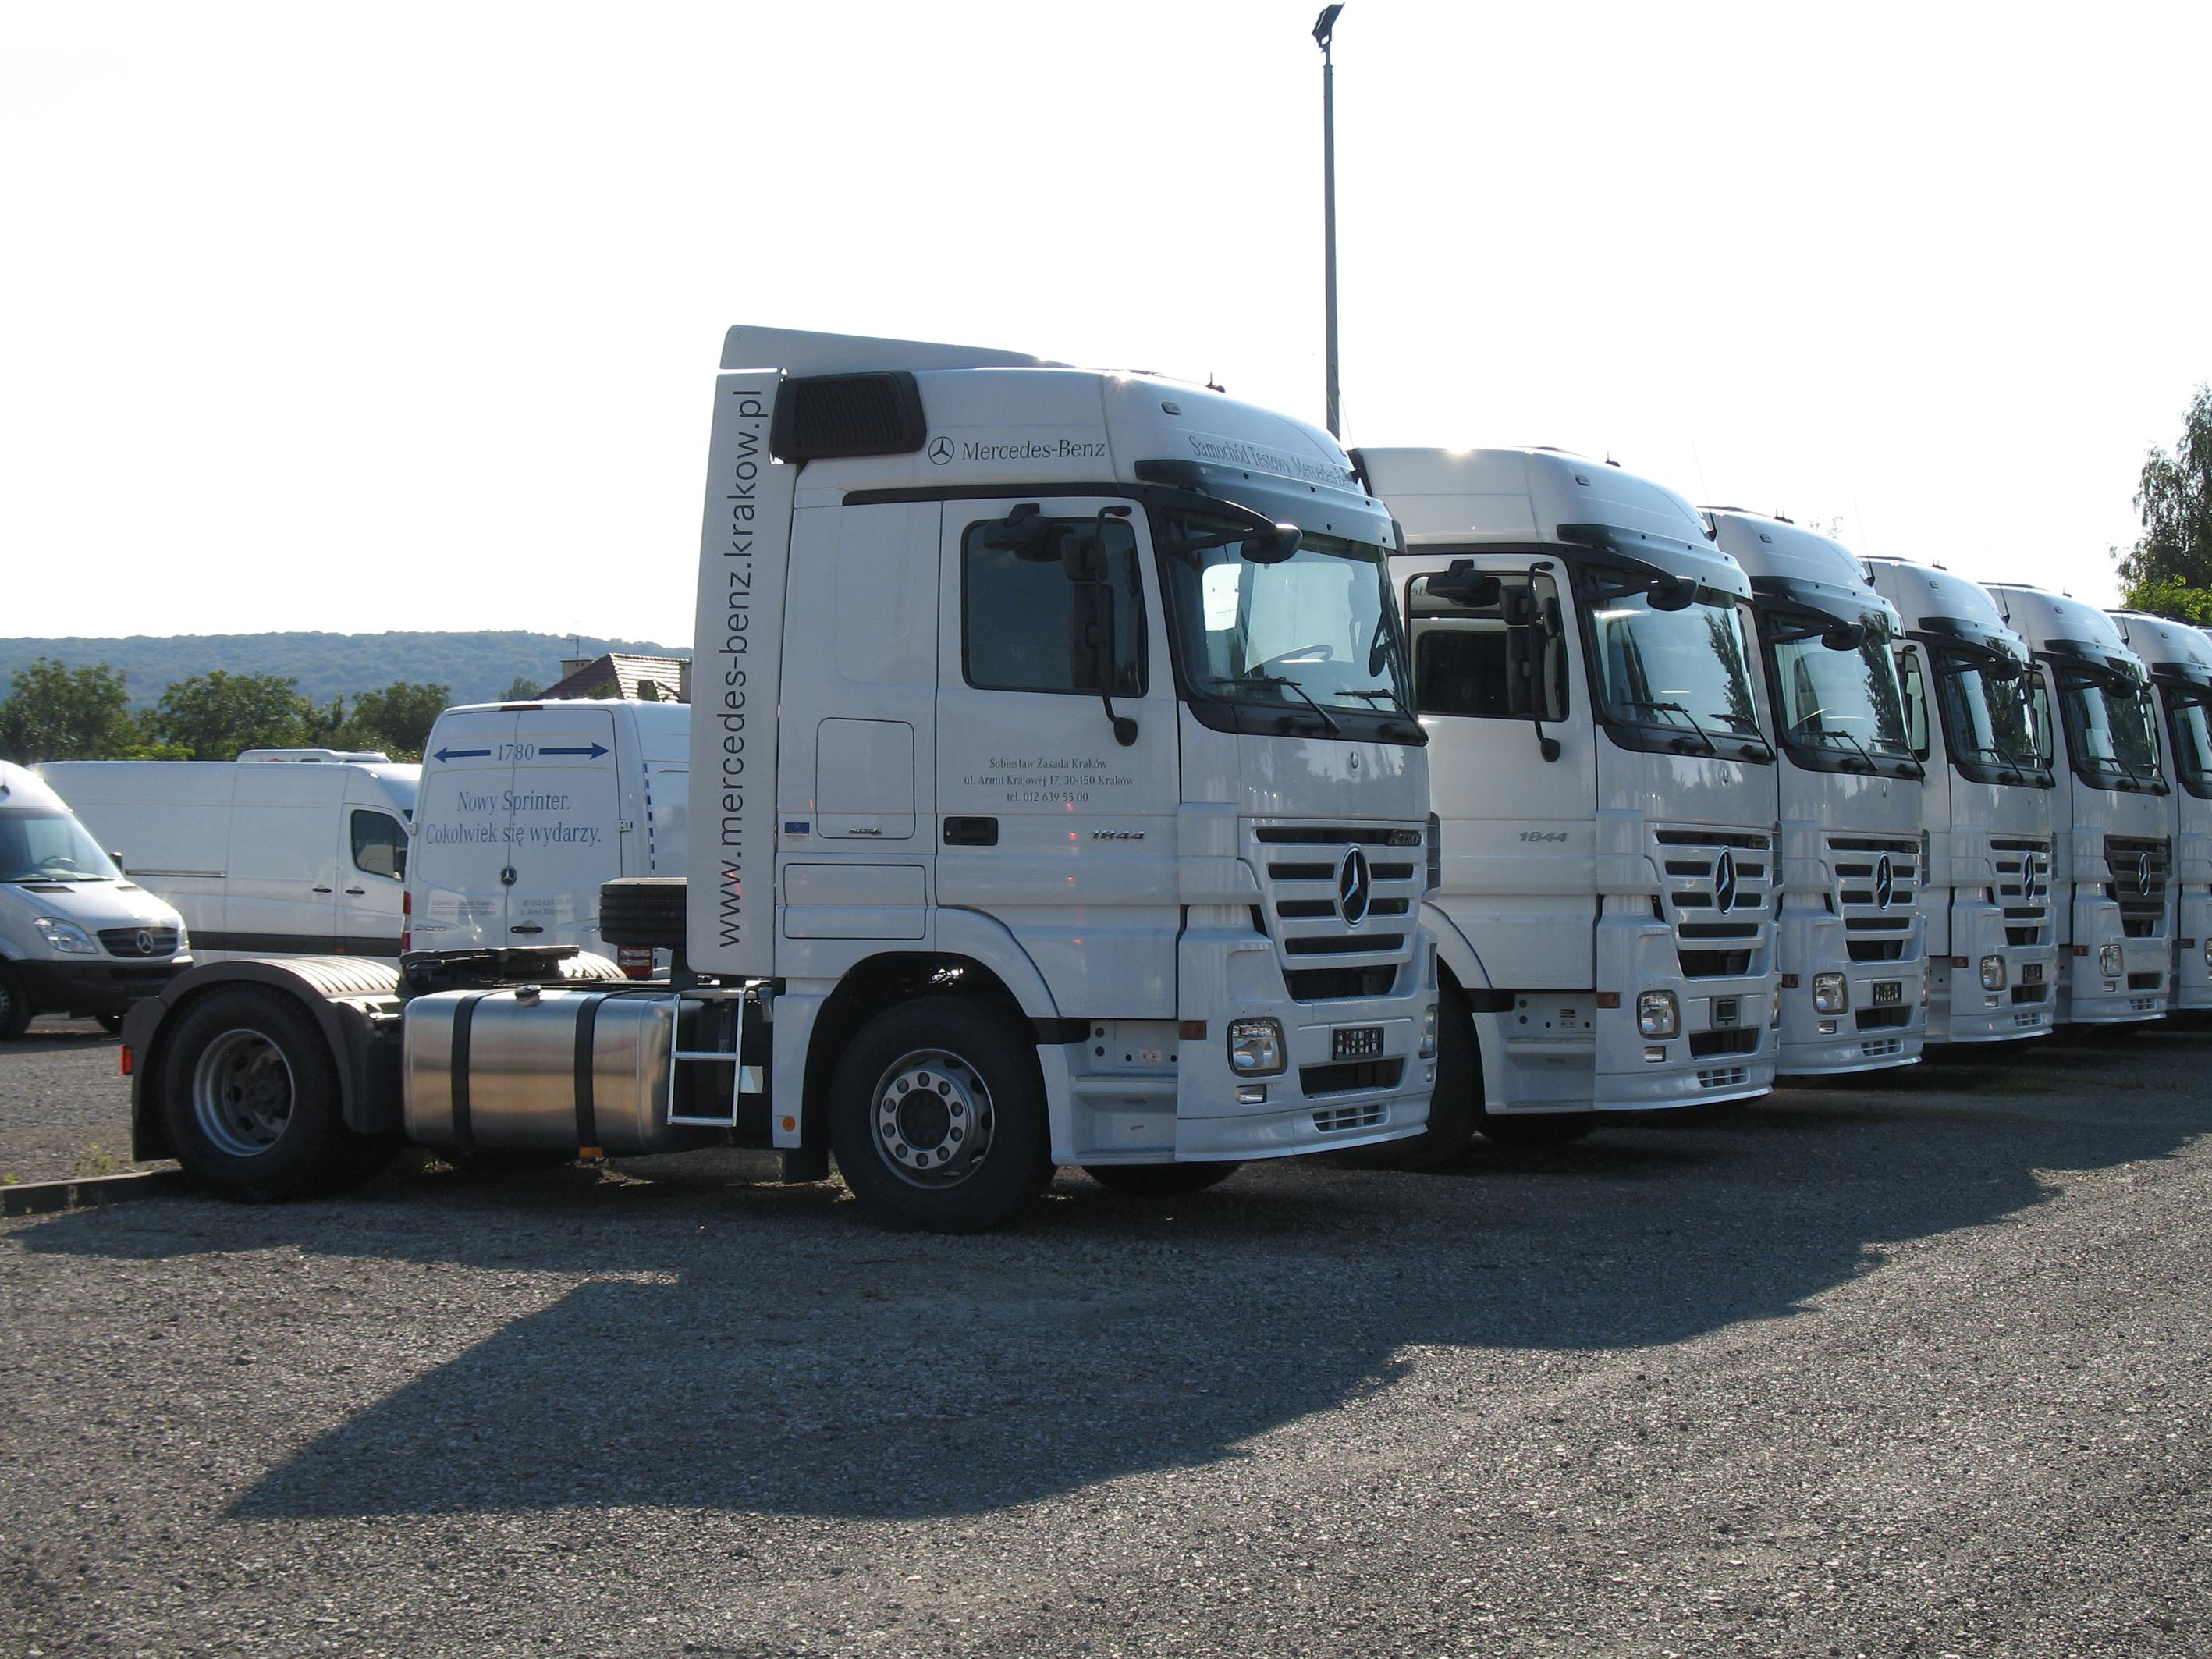 File:Mercedes-Benz Actros's 1844.jpg - Wikimedia Commons